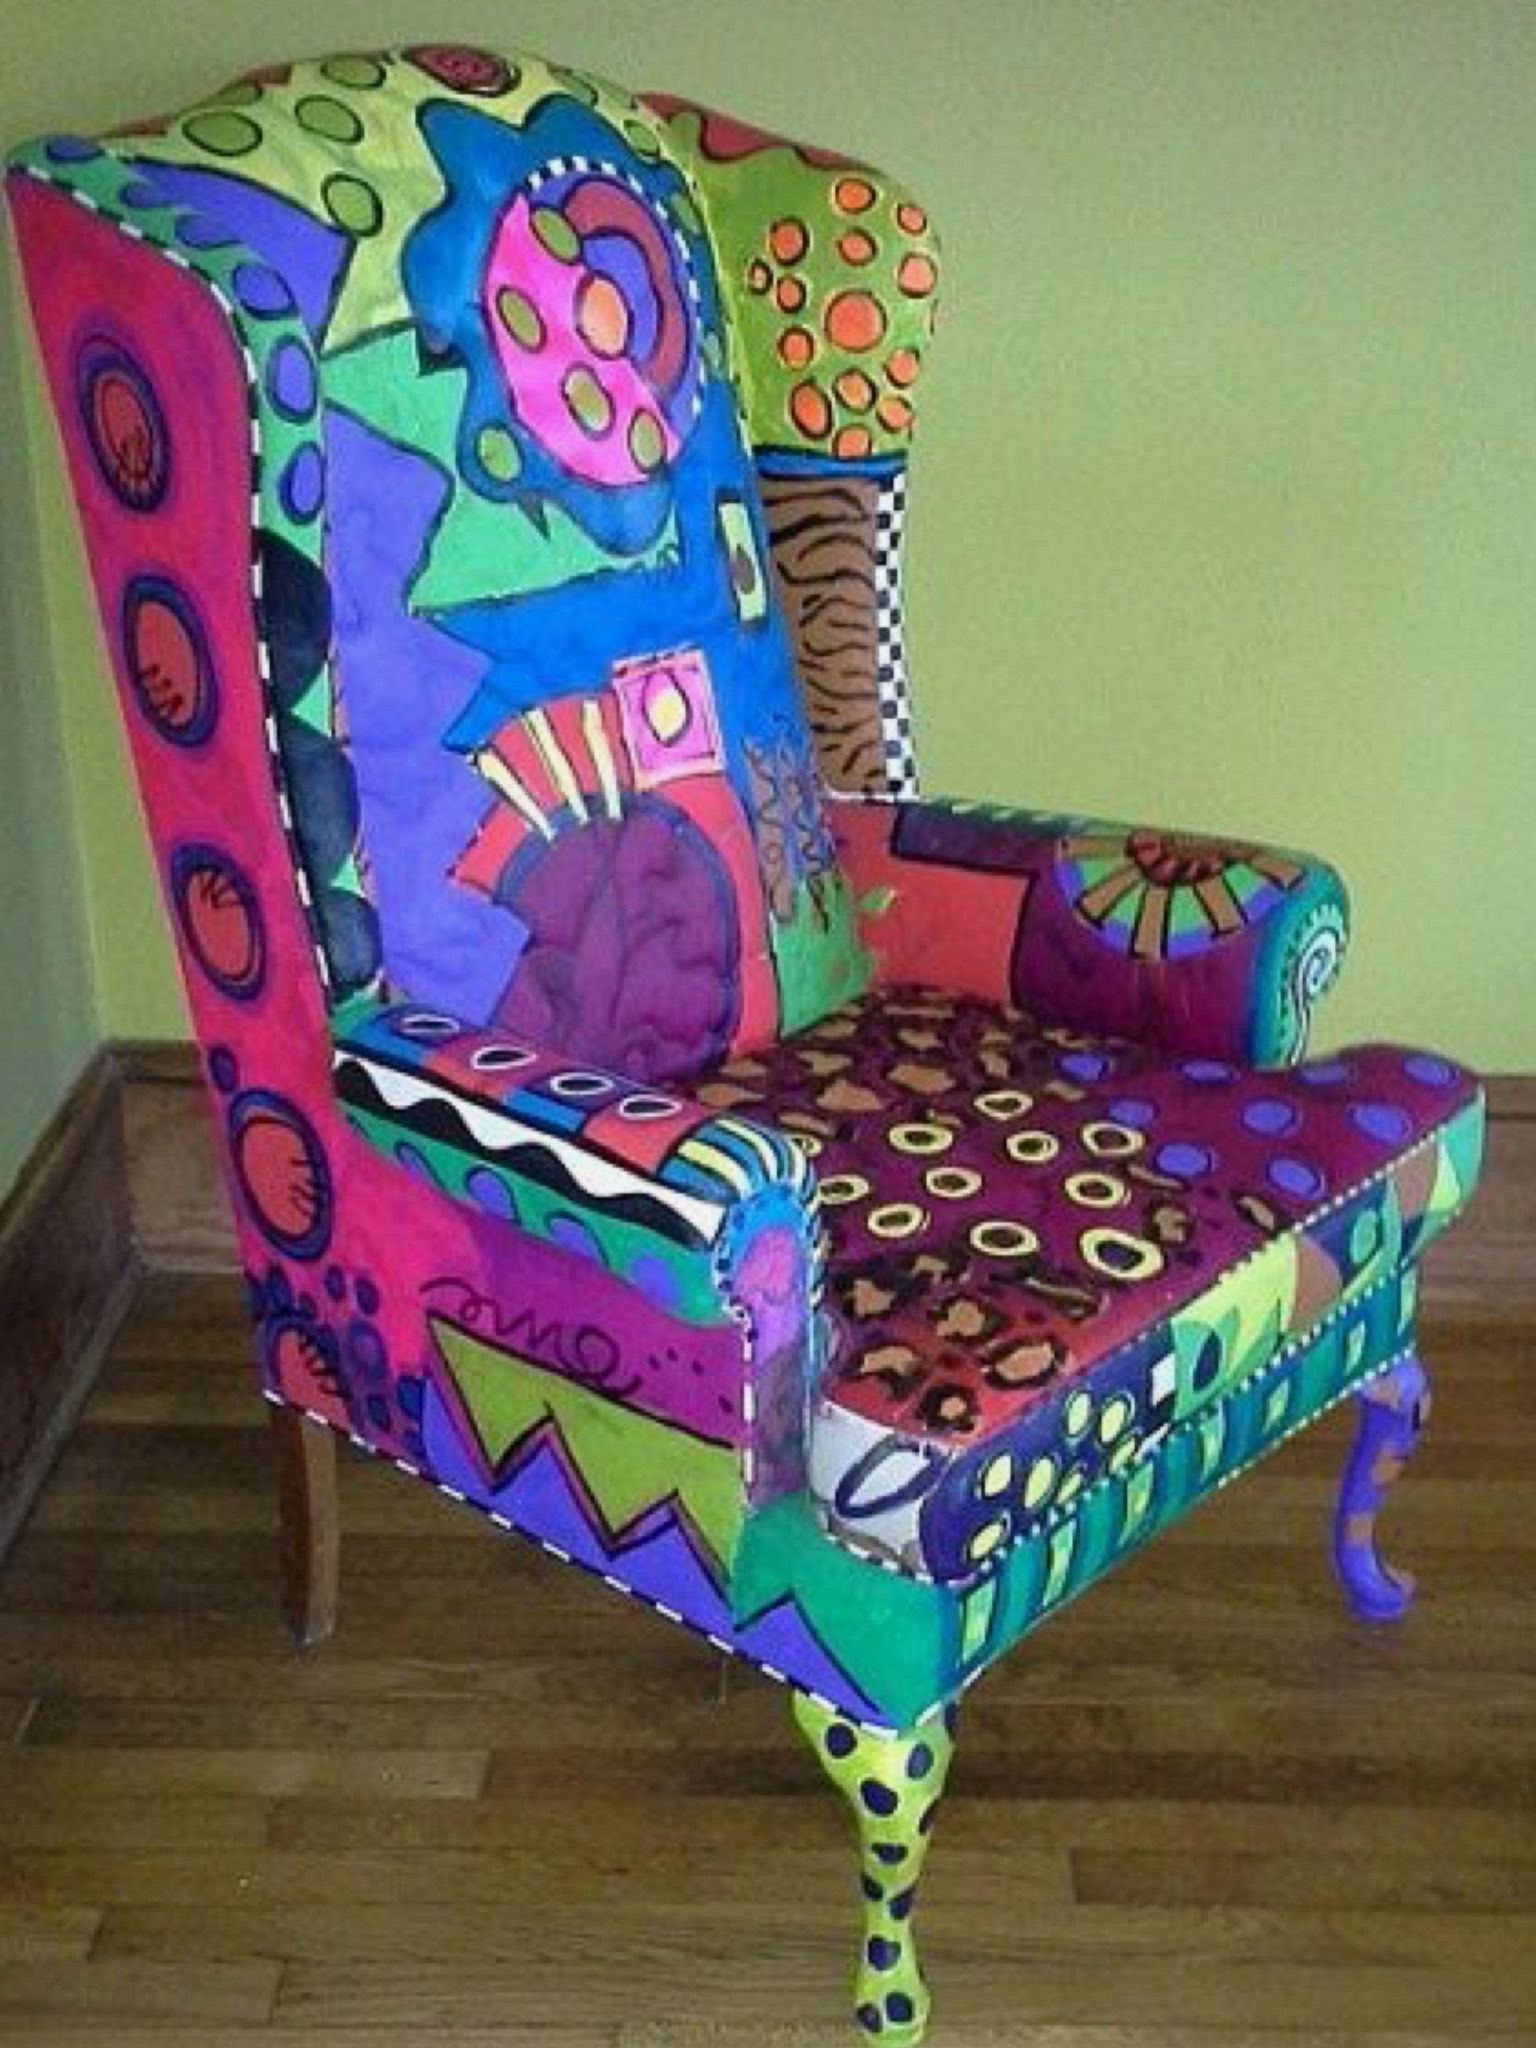 Pin von Holly Rann auf Painted furniture | Pinterest | bunte Möbel ...